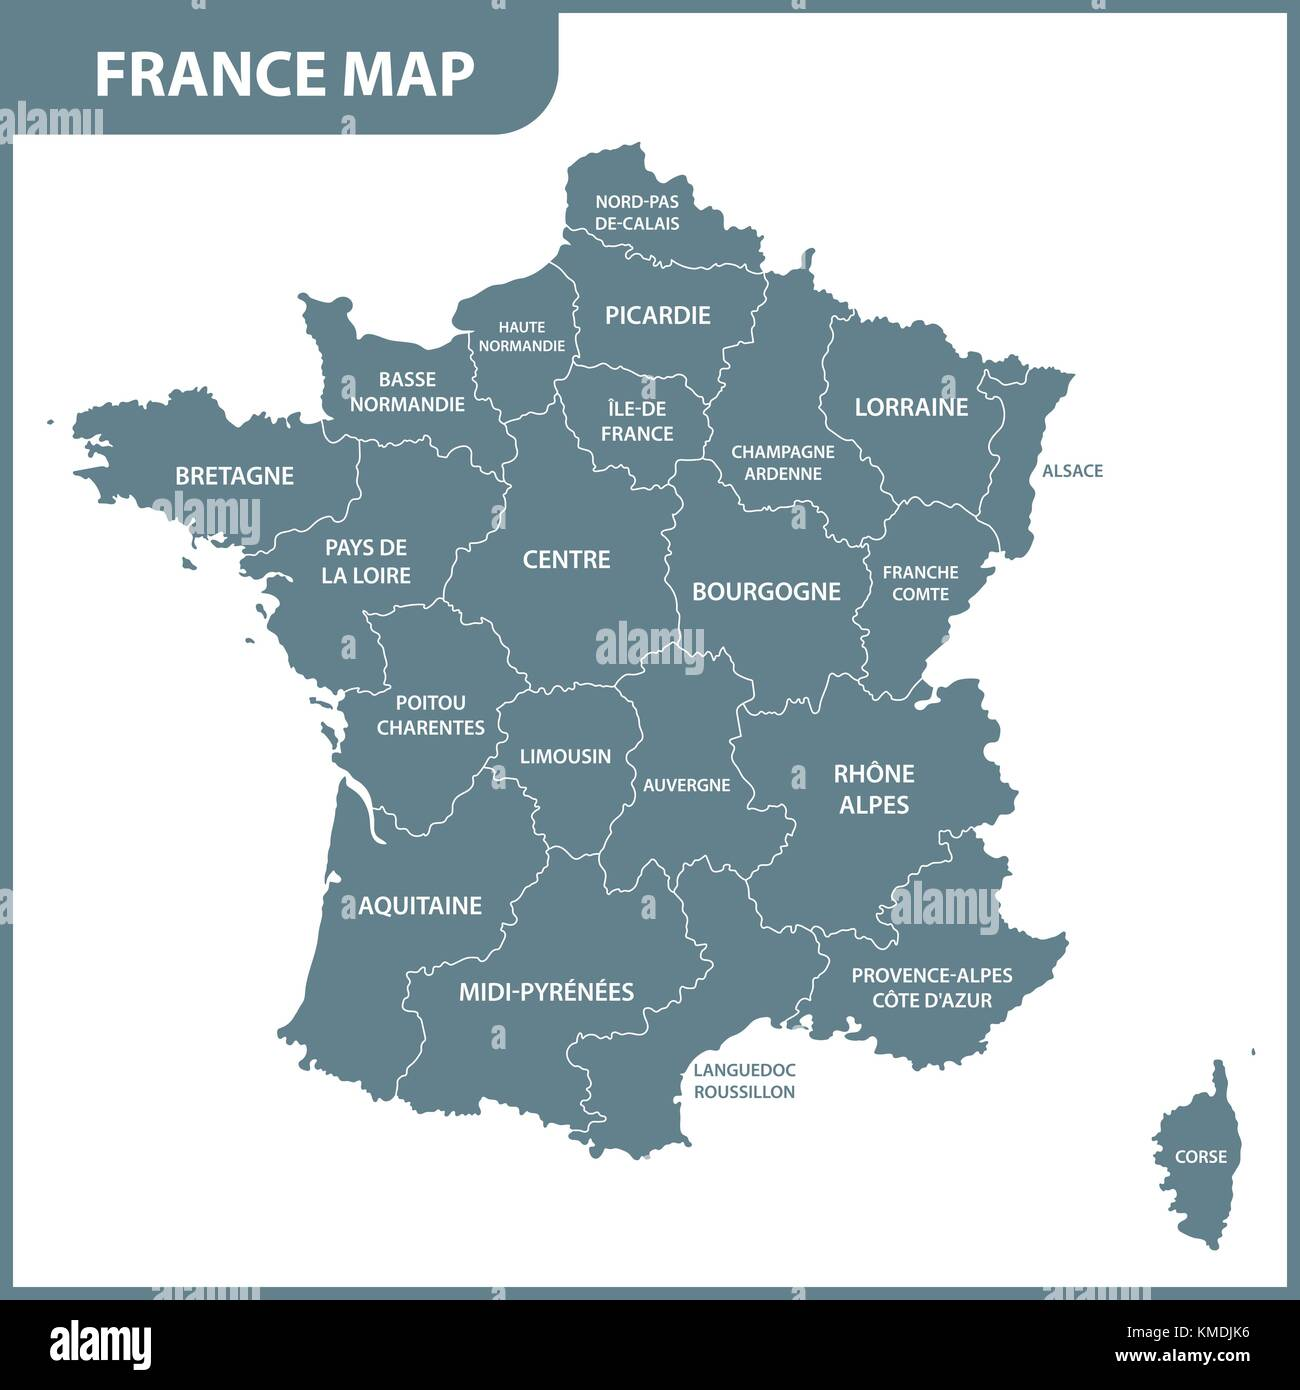 Map Of France With States.The Detailed Map Of The France With Regions Or States Stock Vector